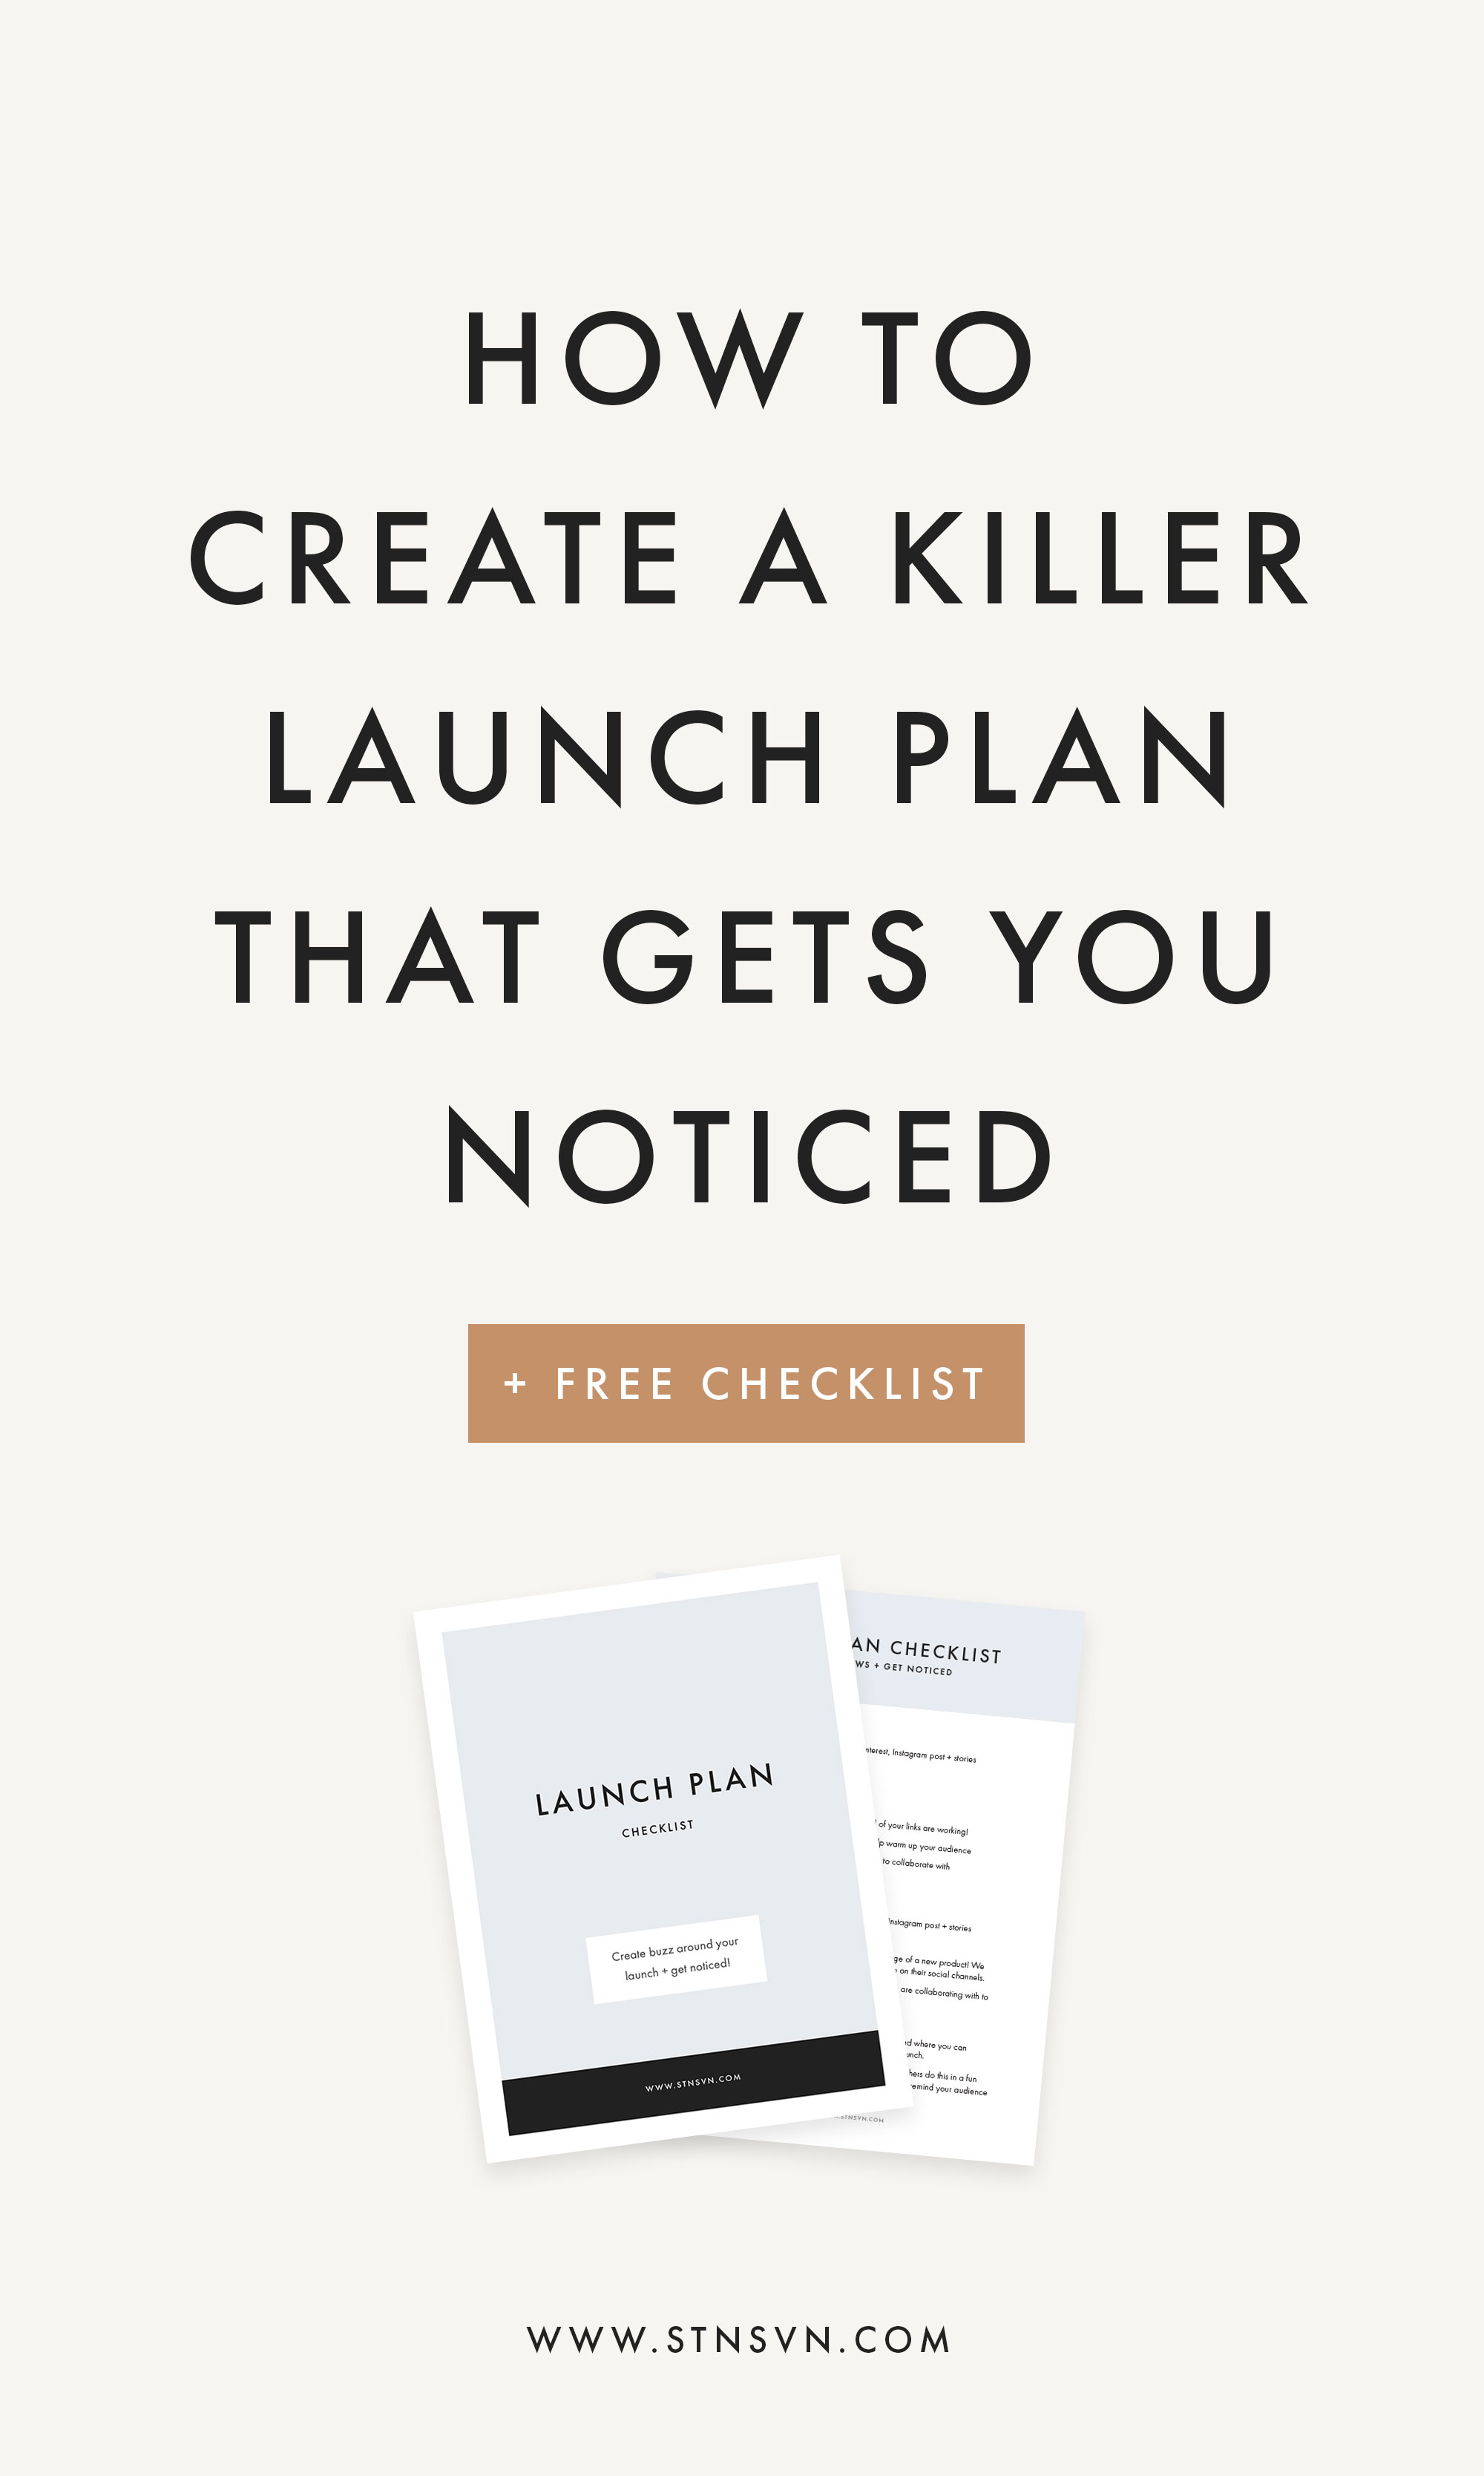 How To Create A Killer Launch Plan That Gets You Noticed Station Seven Squarespace Templates Squarespace Courses Canva Templates And Free Resources For Creative Entrepreneurs